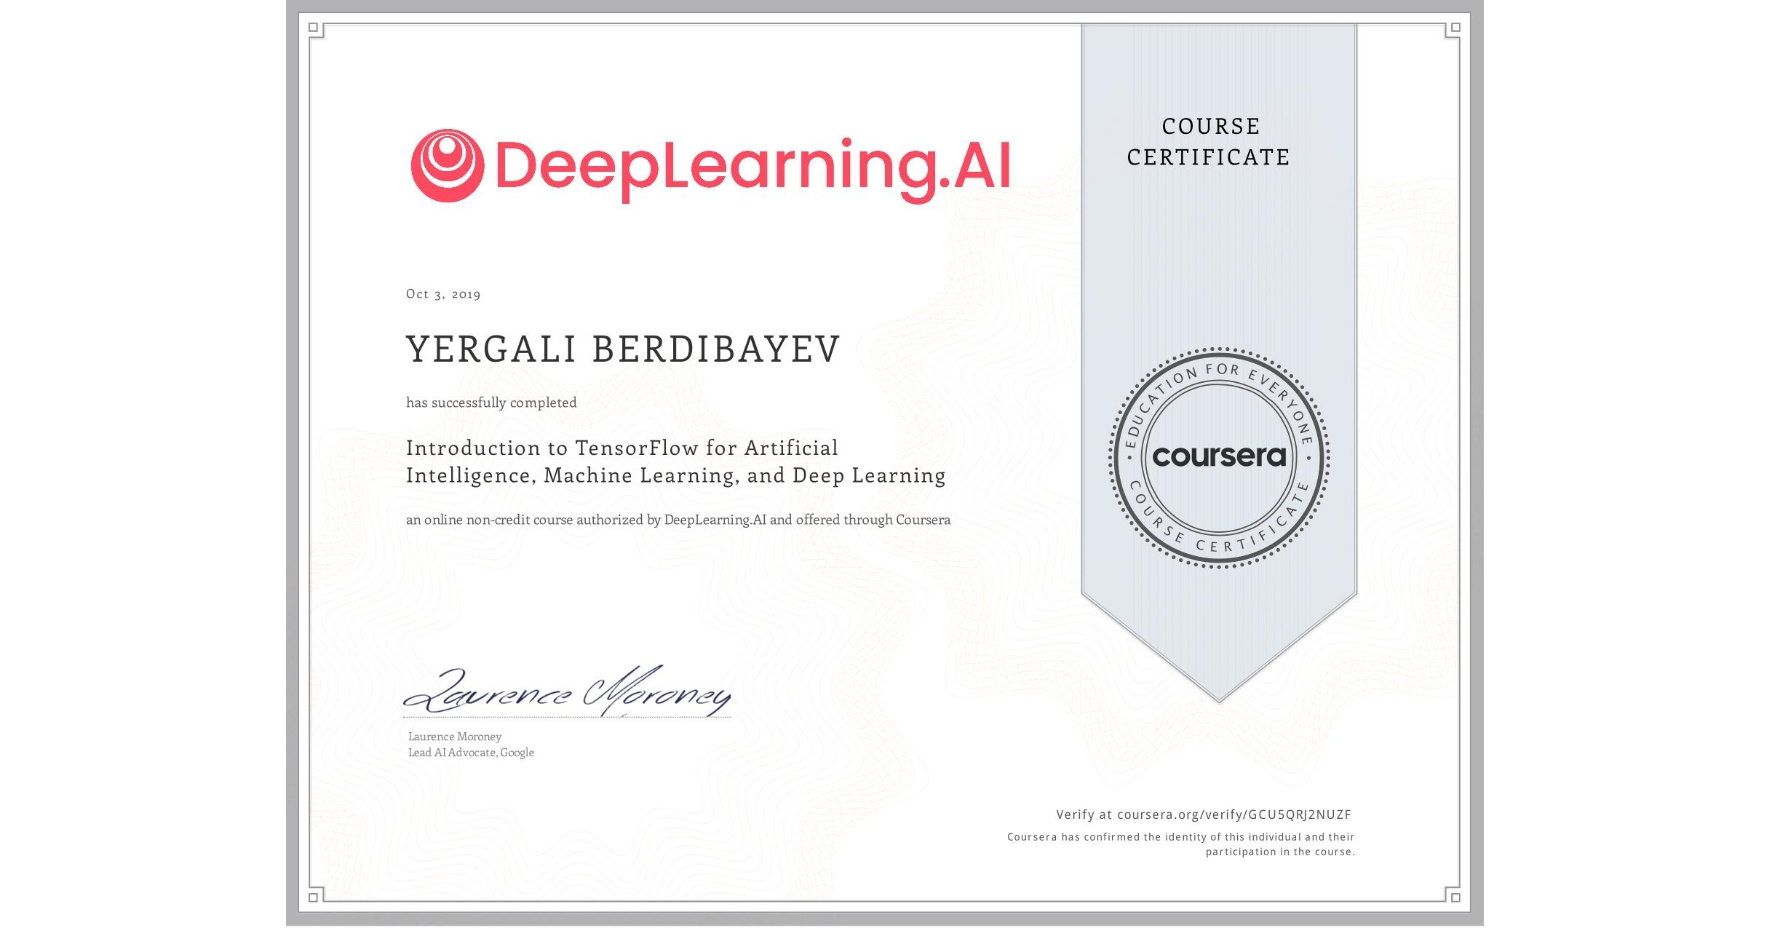 View certificate for Yergali Berdibayev, Introduction to TensorFlow for Artificial Intelligence, Machine Learning, and Deep Learning, an online non-credit course authorized by DeepLearning.AI and offered through Coursera